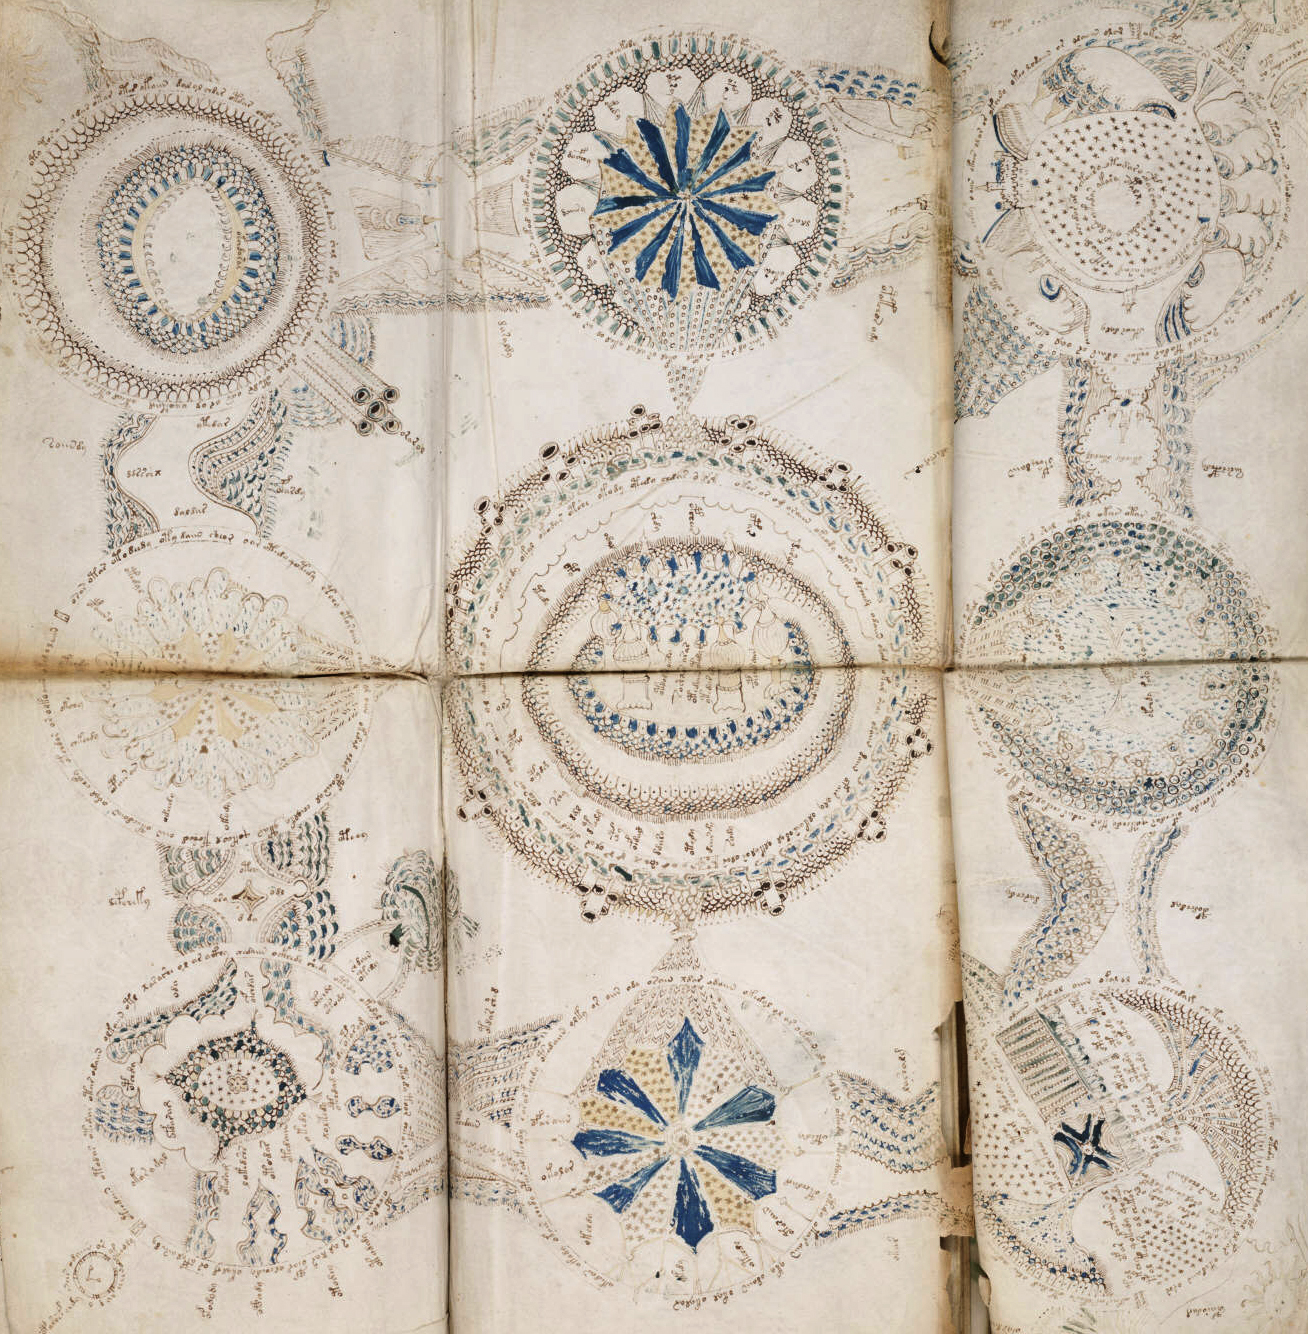 http://upload.wikimedia.org/wikipedia/commons/7/77/Voynich_manuscript_cosmological_example_86v_crop.jpg